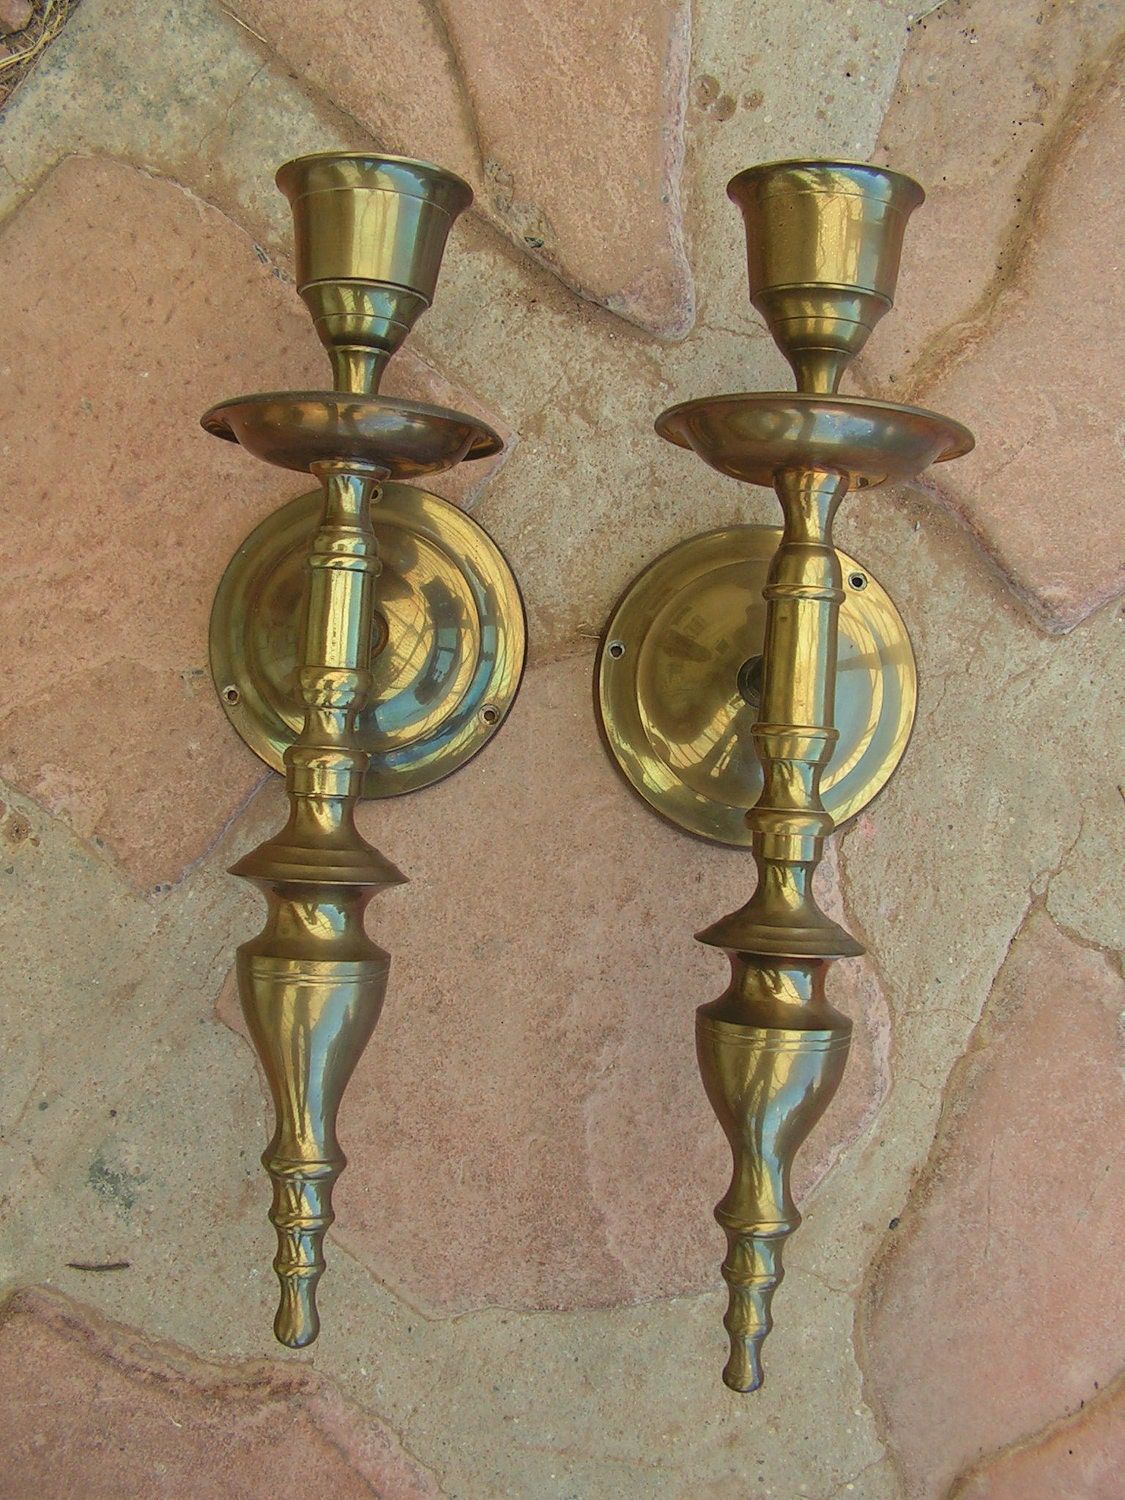 Vintage Brass Wall Sconces Candle Holders Large by retrosideshow